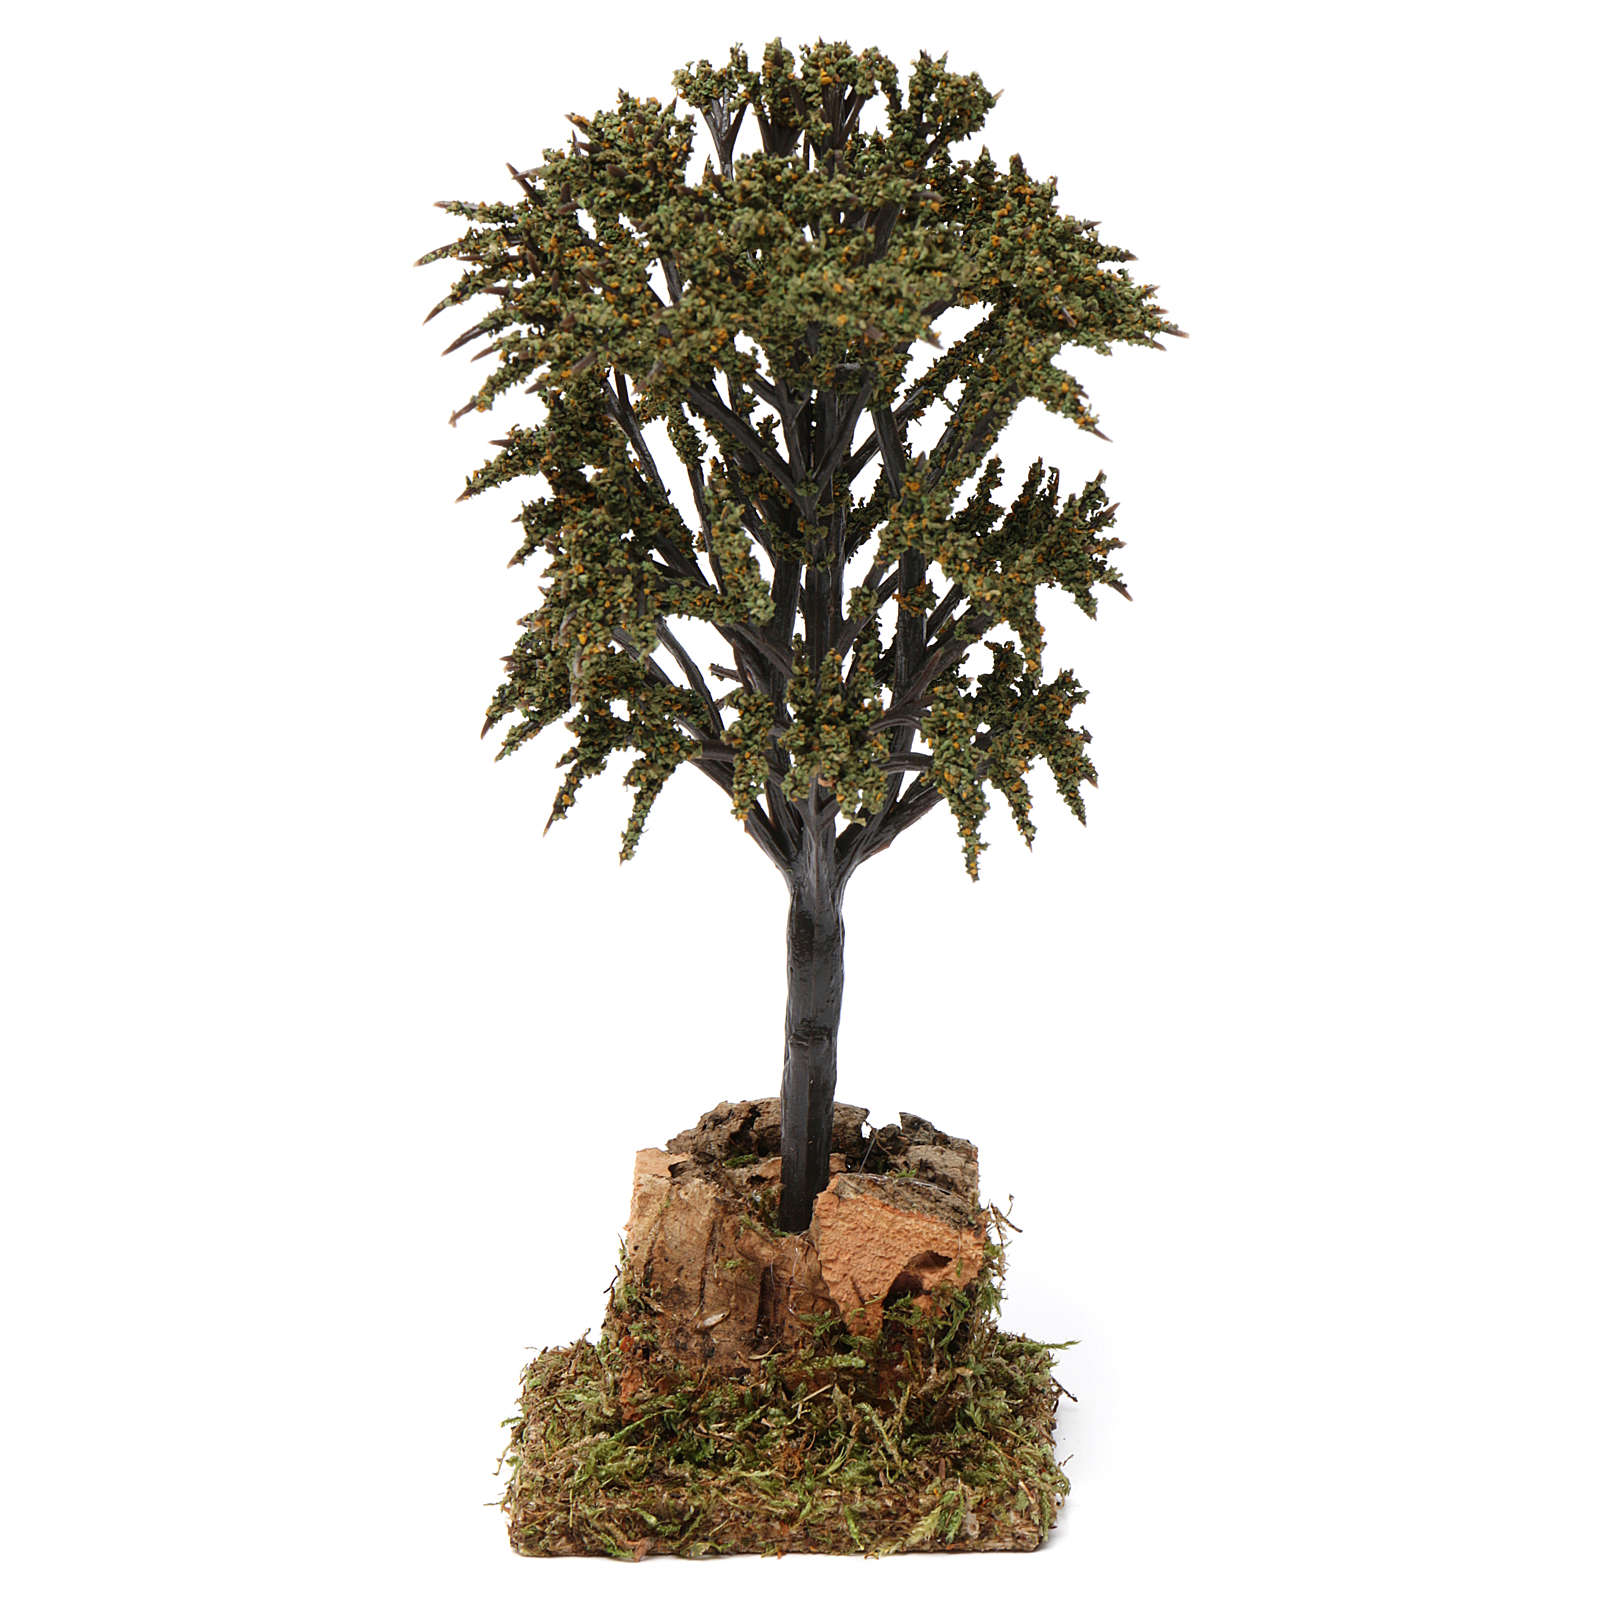 Green tree with branches for Nativity Scene 7-10 cm 4